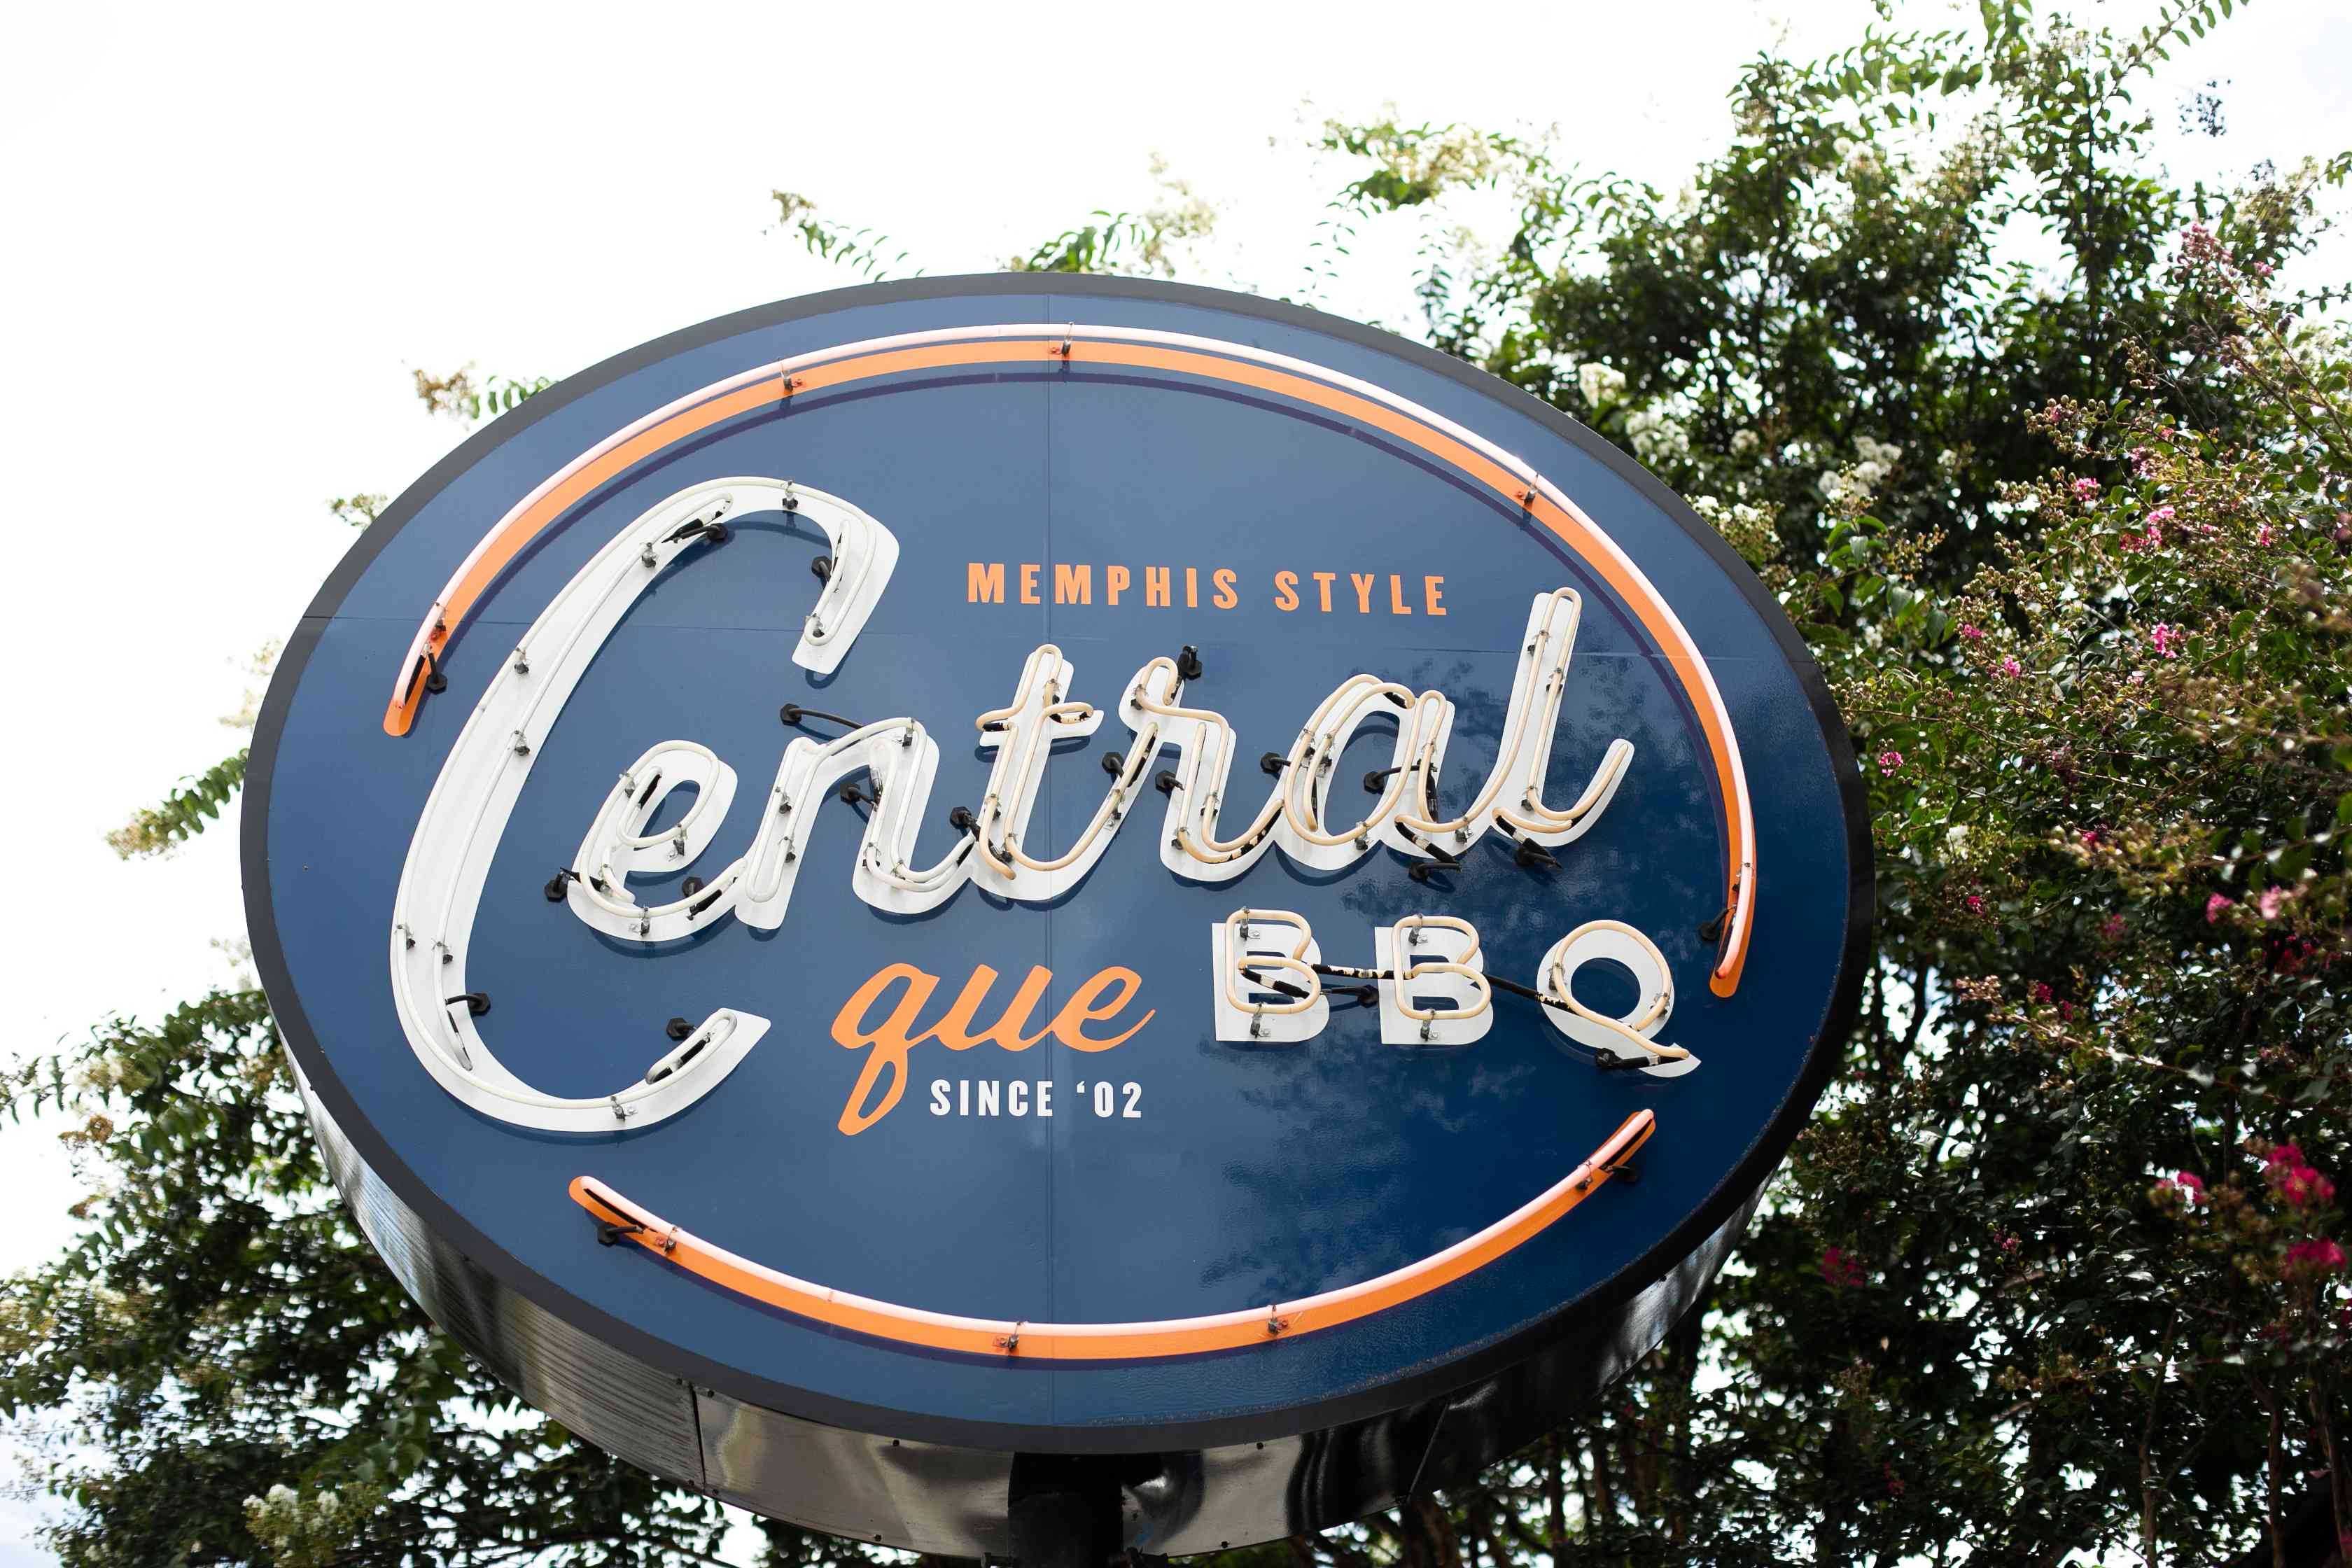 Central BBQ in Memphis, Tennessee